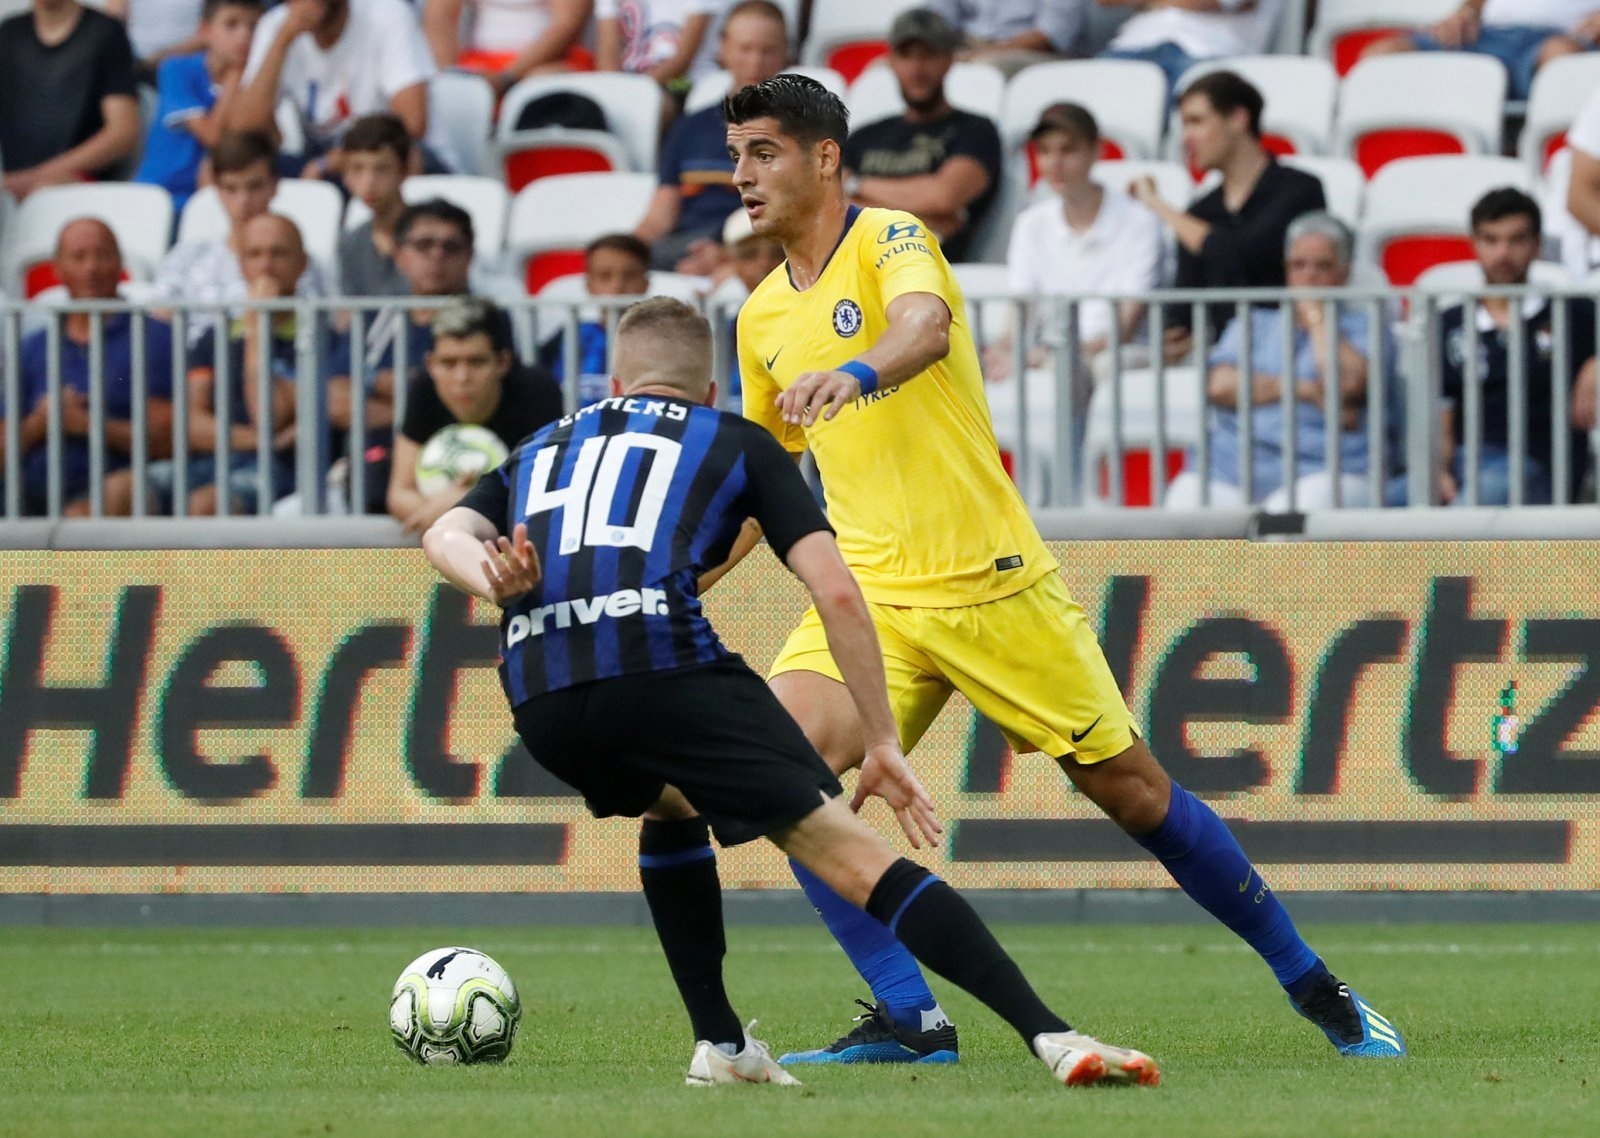 Scores 20, Hazard link up: This should be the dream 18/19 Chelsea season for Morata